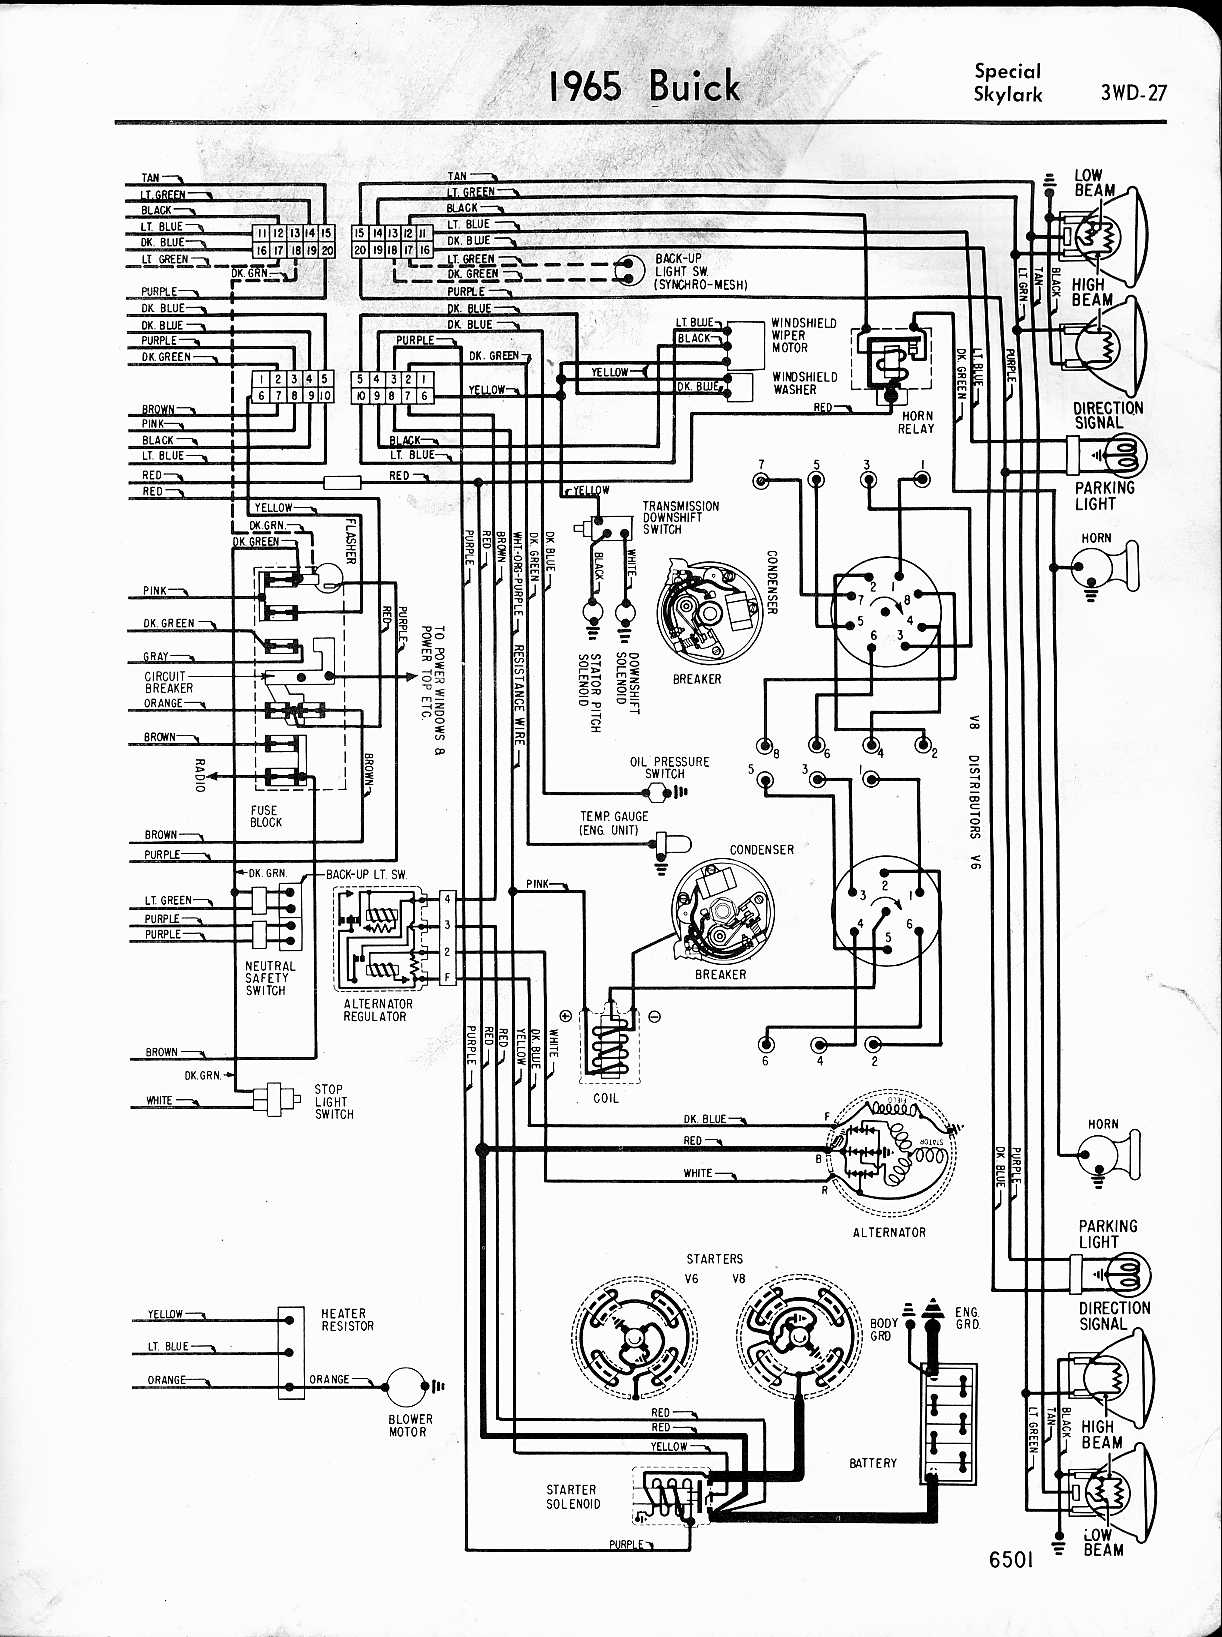 Buick Wiring Schematics Diagram Data For 1968 Ford Mustang Diagrams 1957 1965 Automotive Special Skylark Right Half